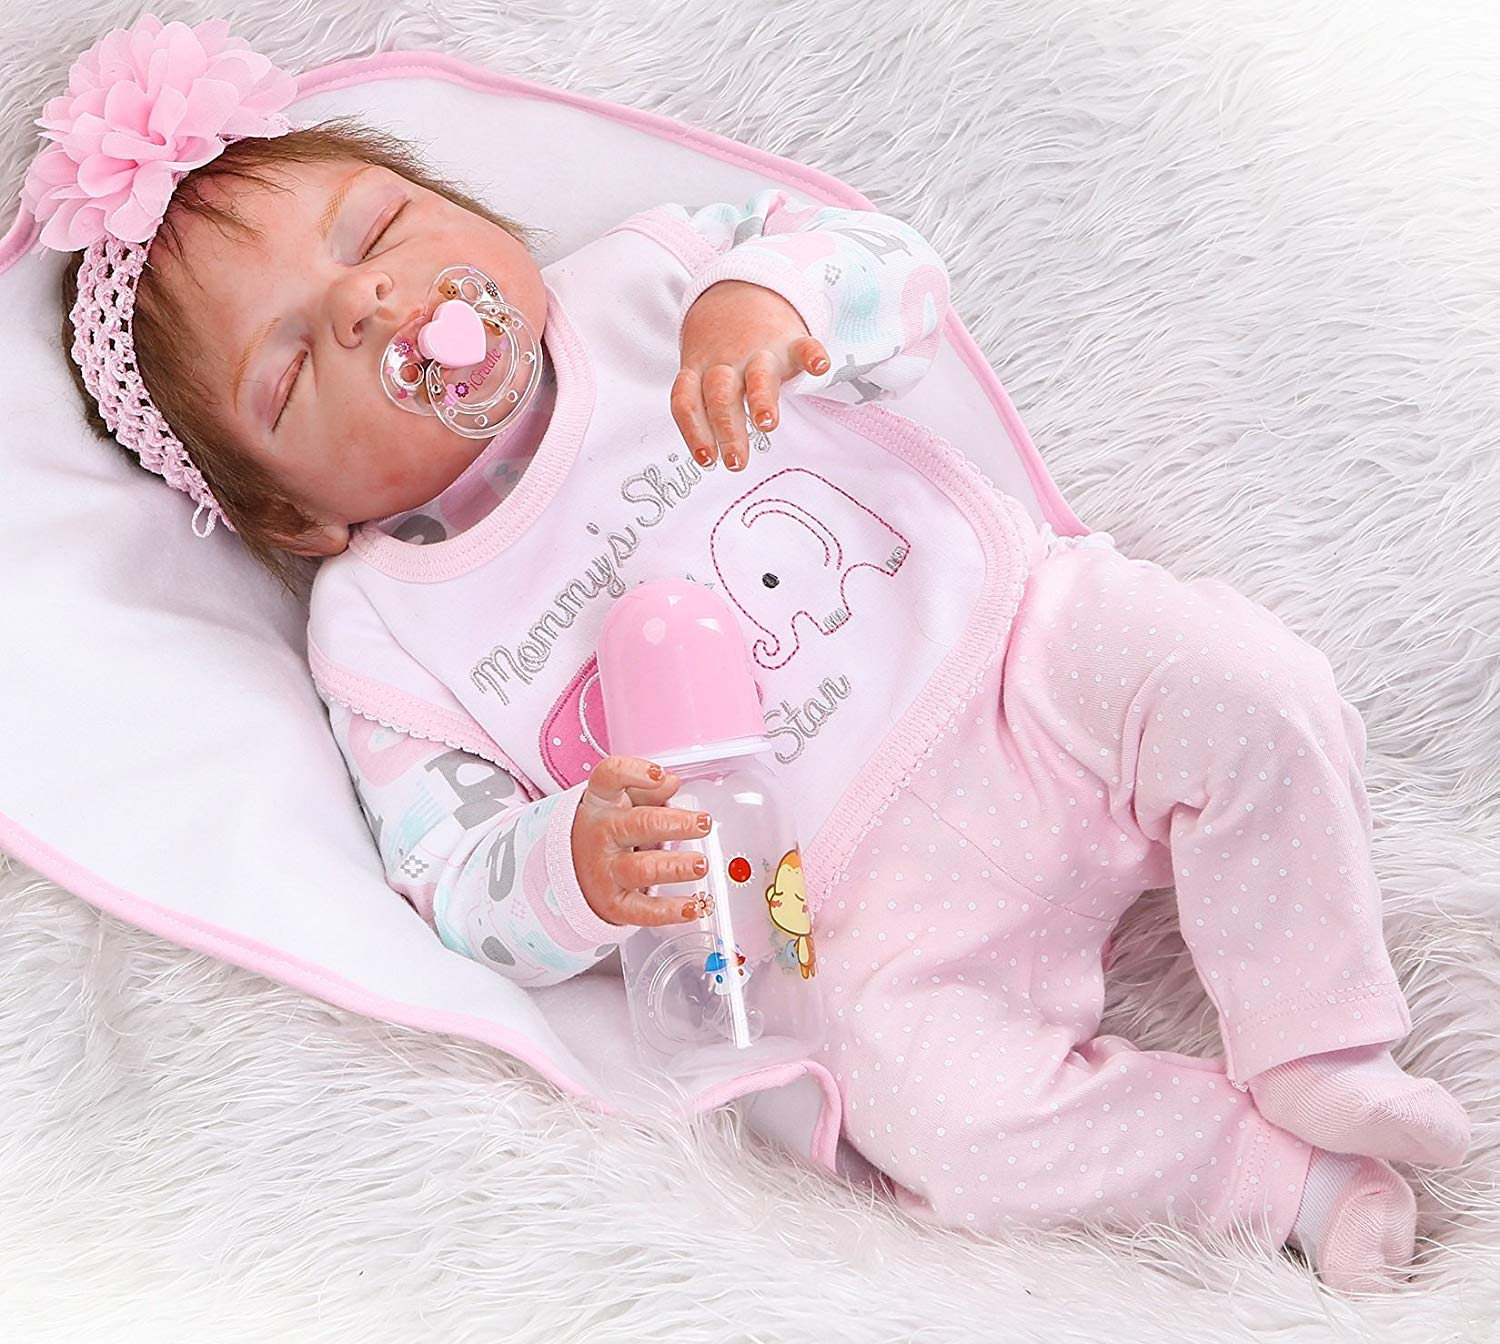 NPKDOLLS Reborn Baby Doll Girl Clothes 55 cm for 20-23 inch Reborn Dolls Clothing Outfit 7 Pieces Sets